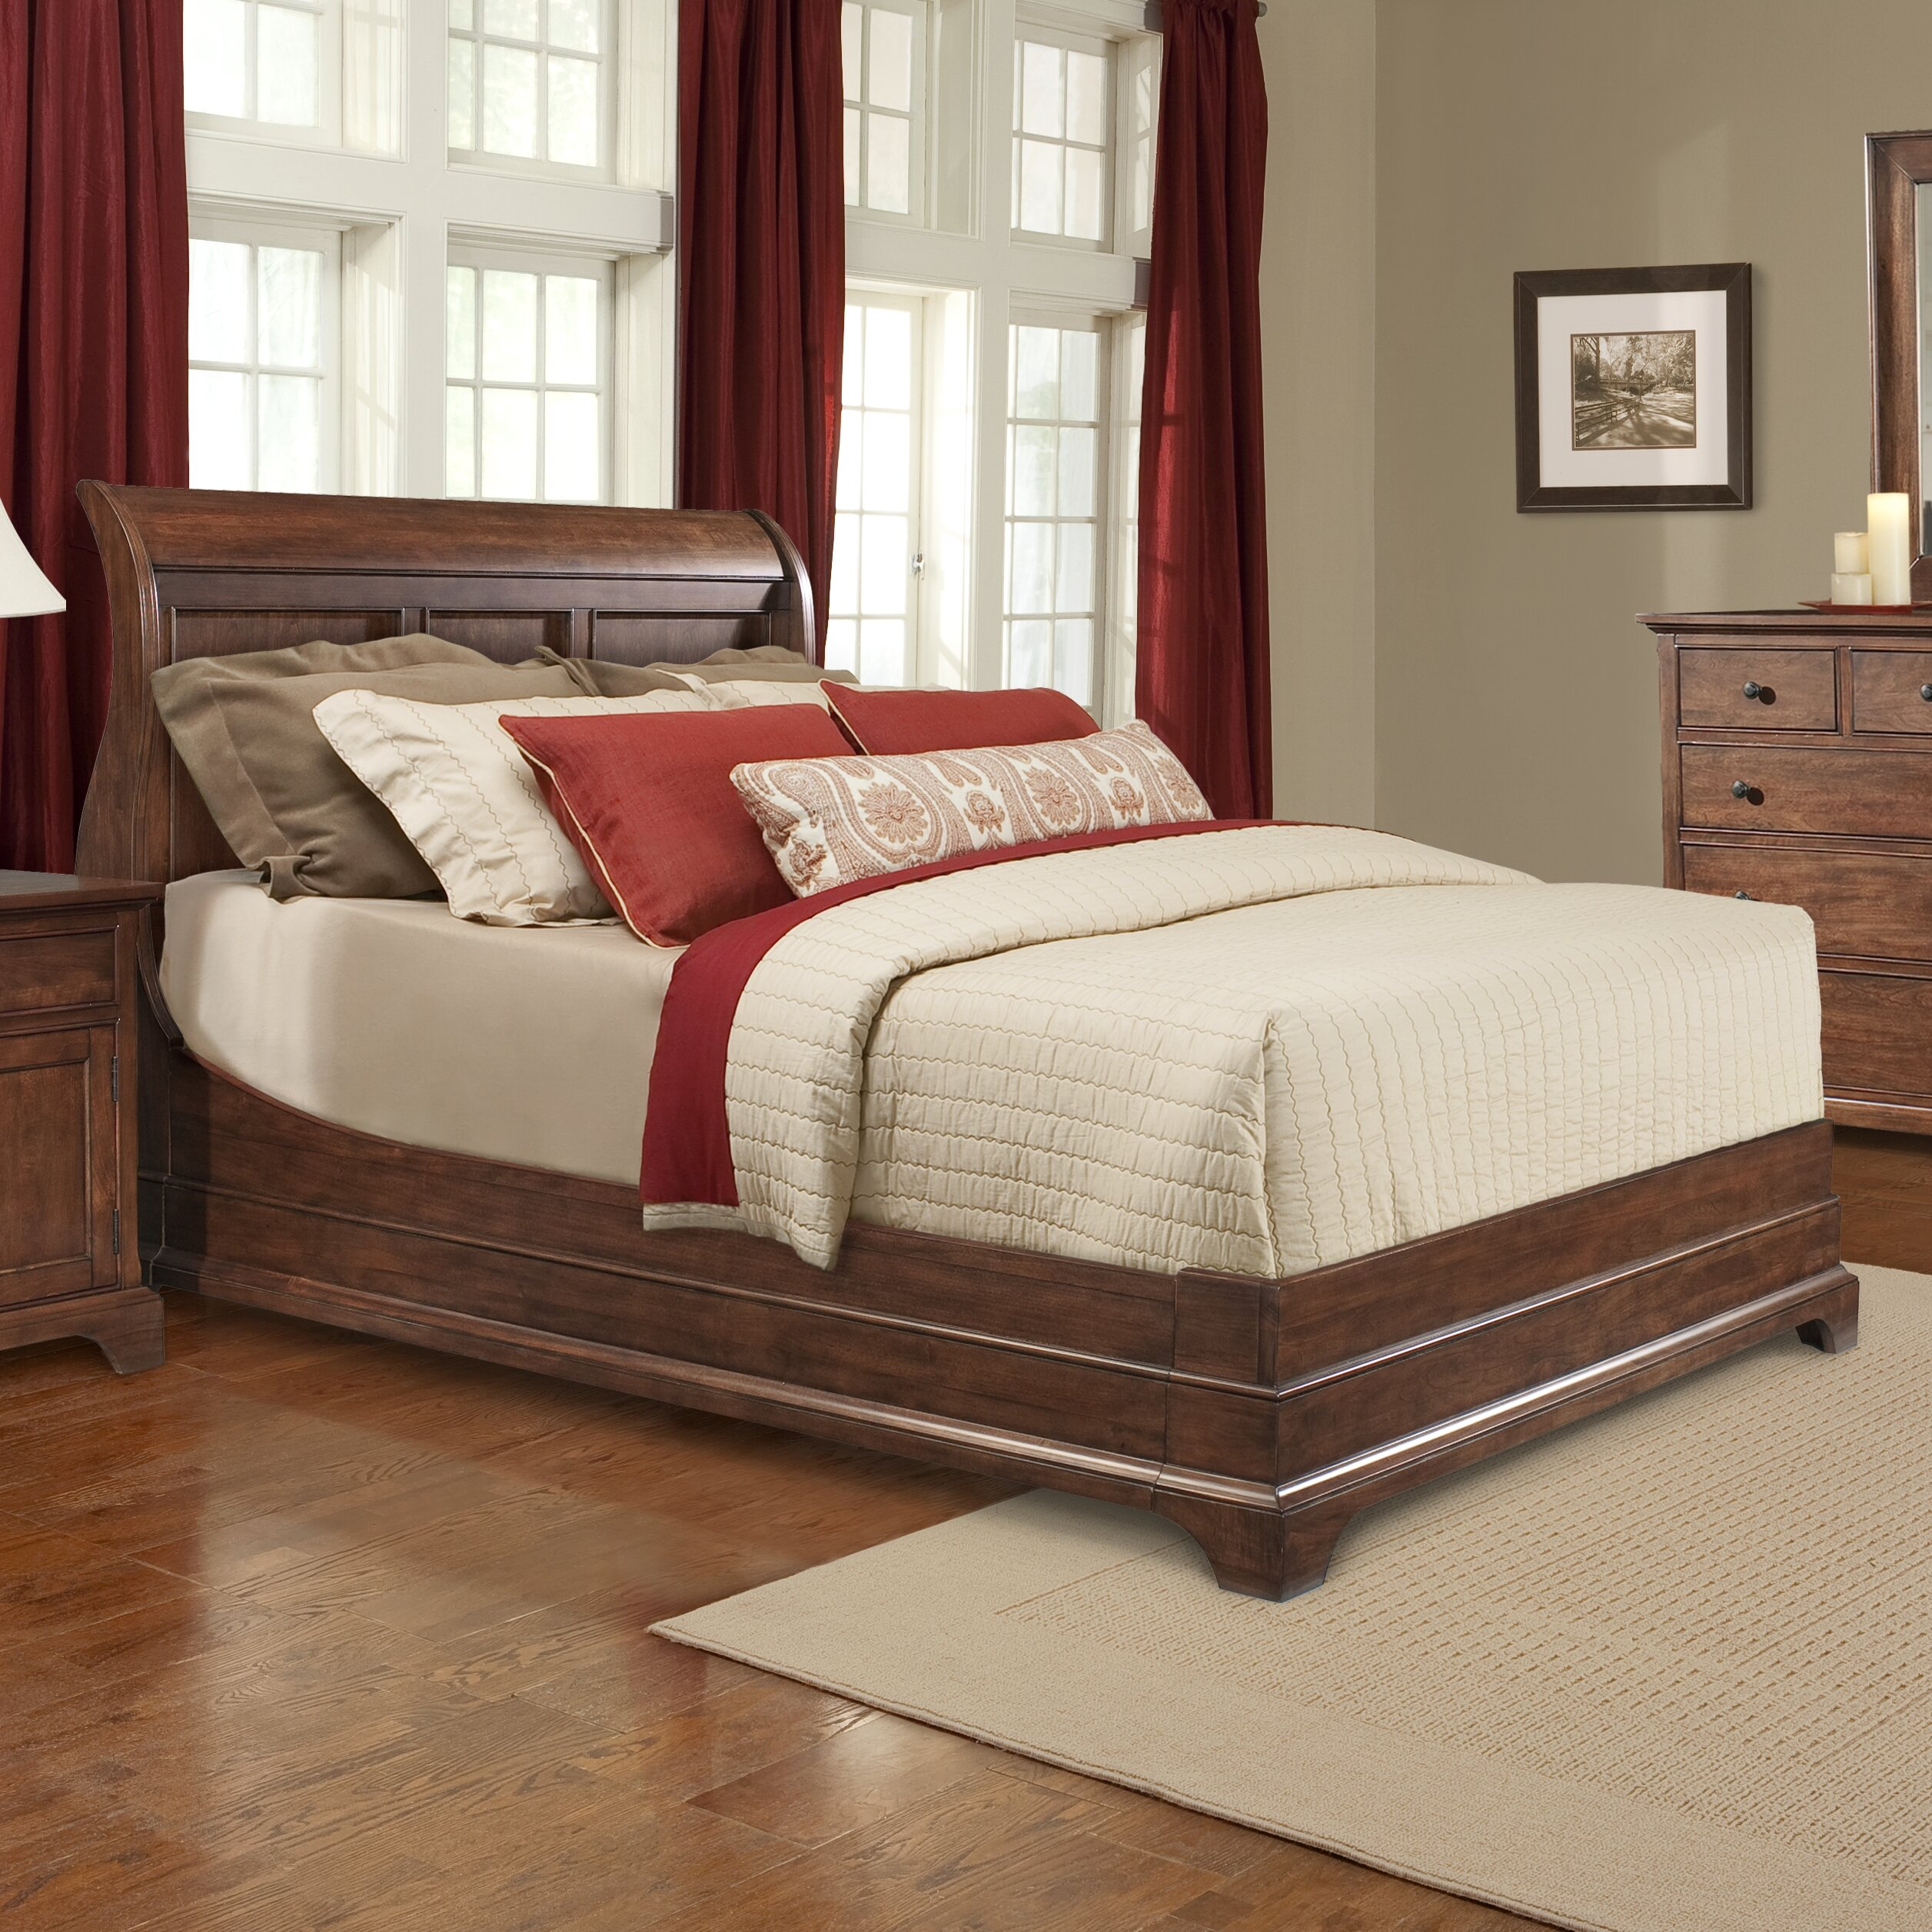 Cresent Furniture Retreat Cherry Platform Customizable Bedroom Set Reviews